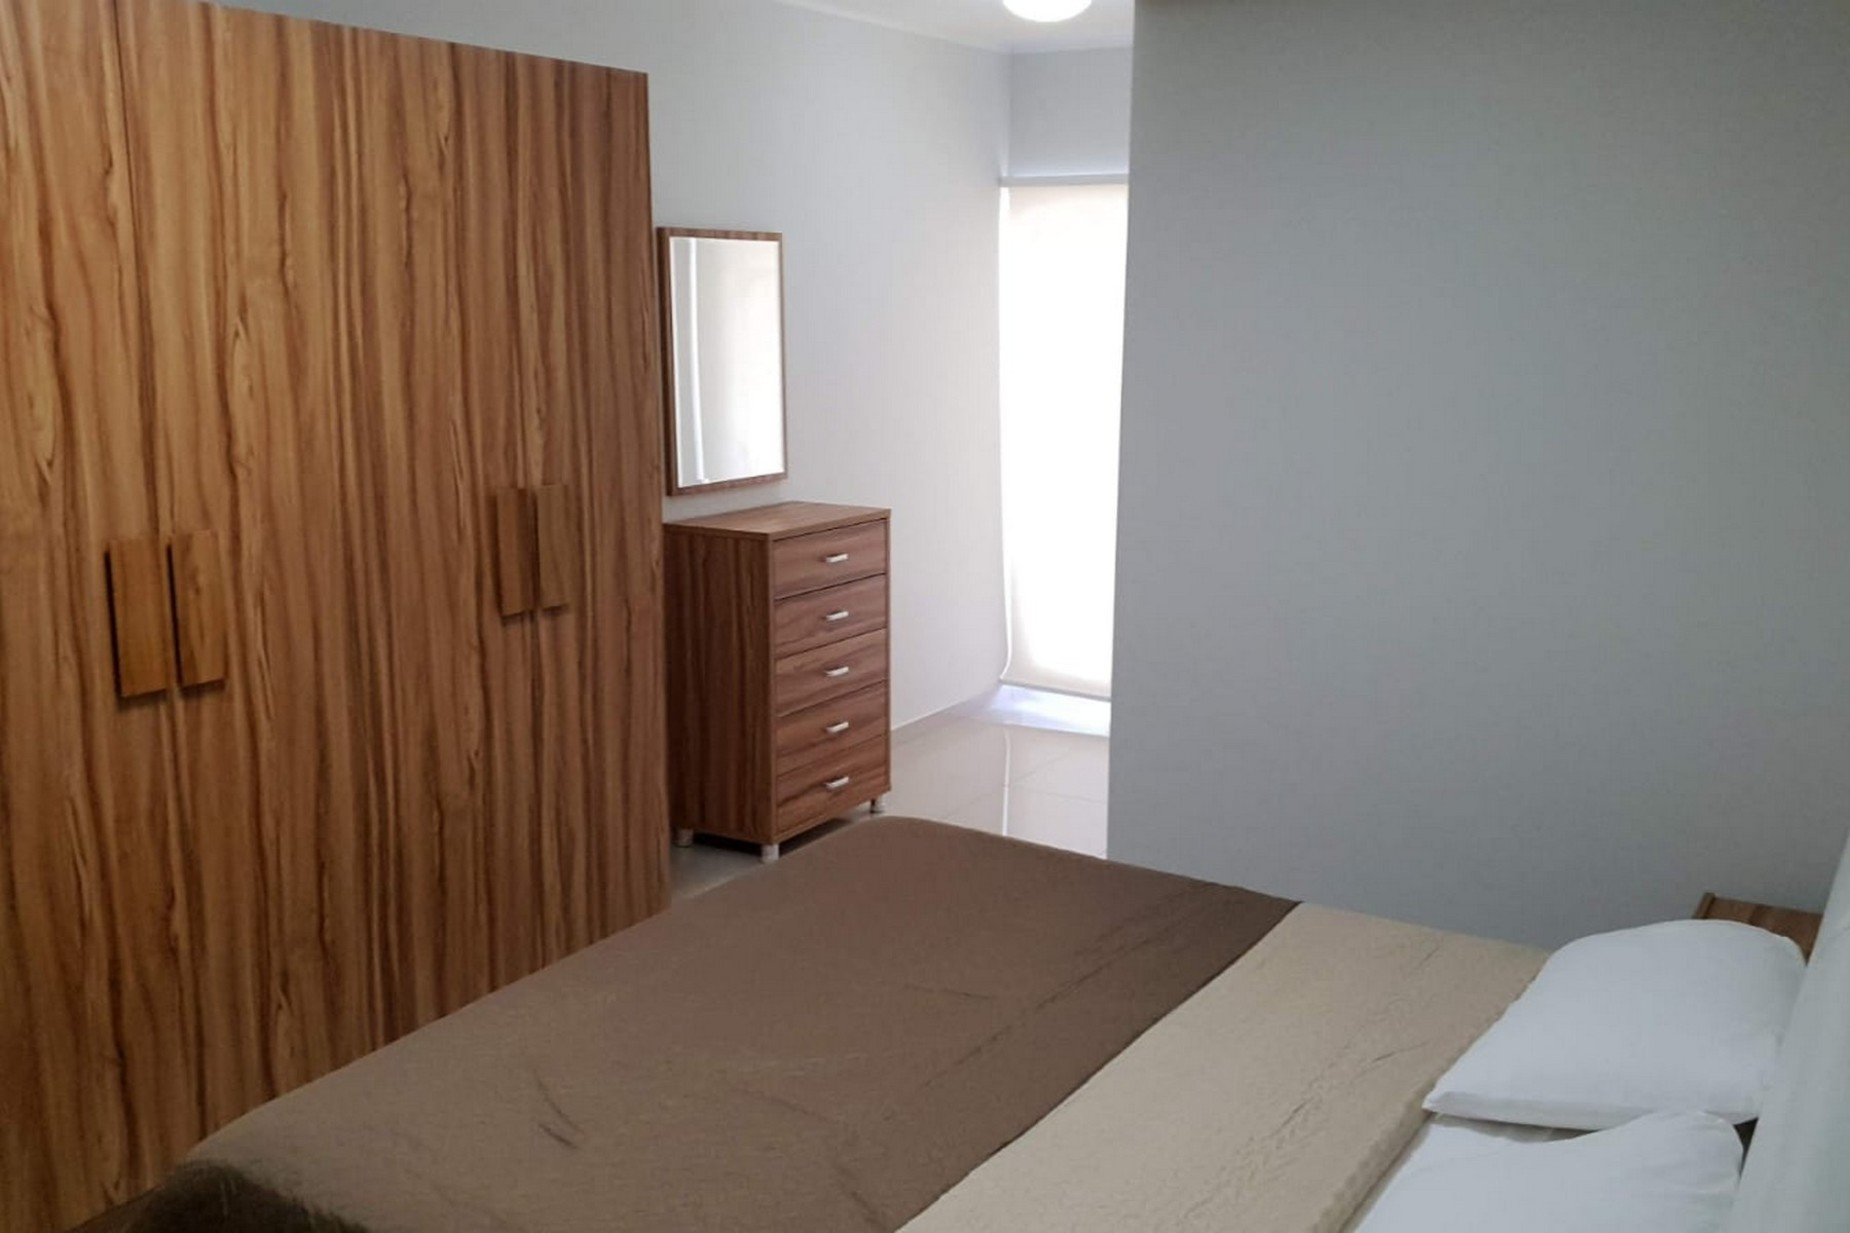 3 bed Apartment For Rent in Ibragg, Ibragg - thumb 5